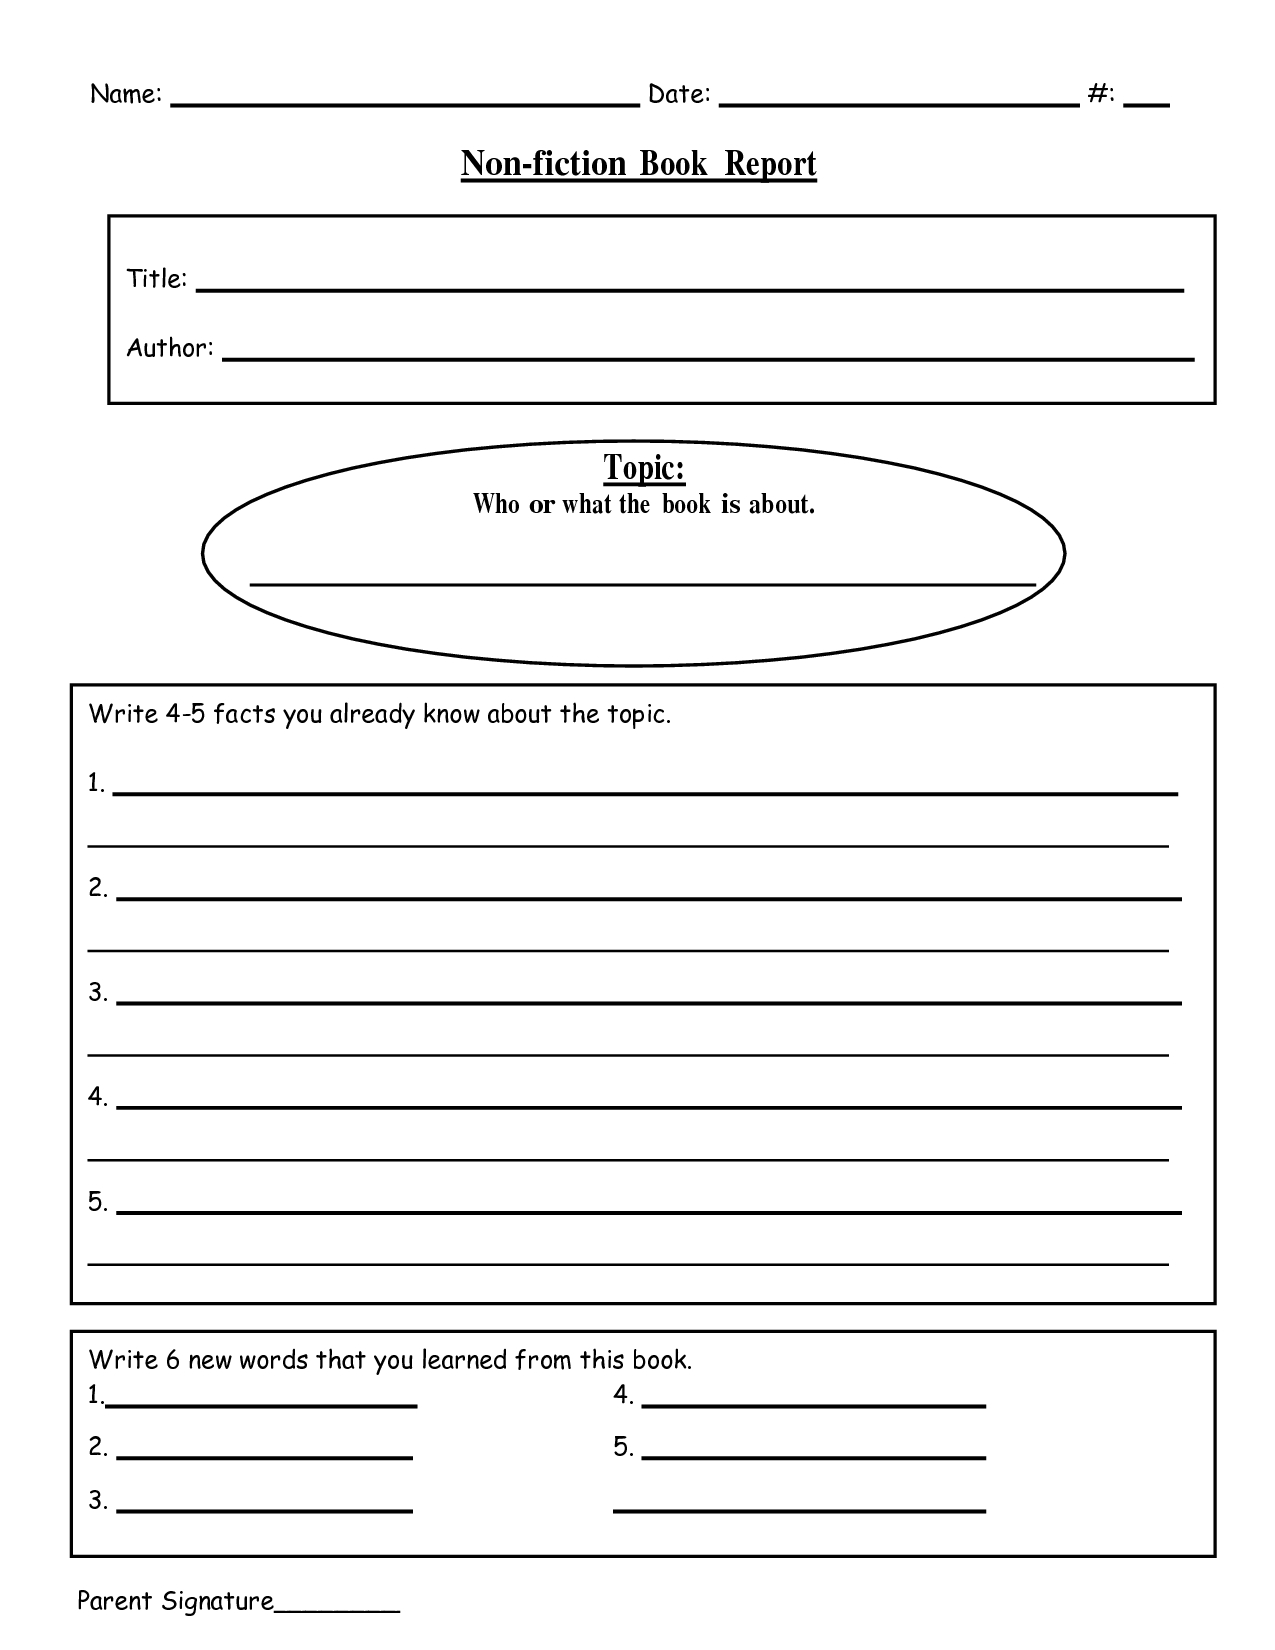 Free Printable Book Report Templates | Non-Fiction Book Report.doc - Free Printable Book Report Forms For Elementary Students